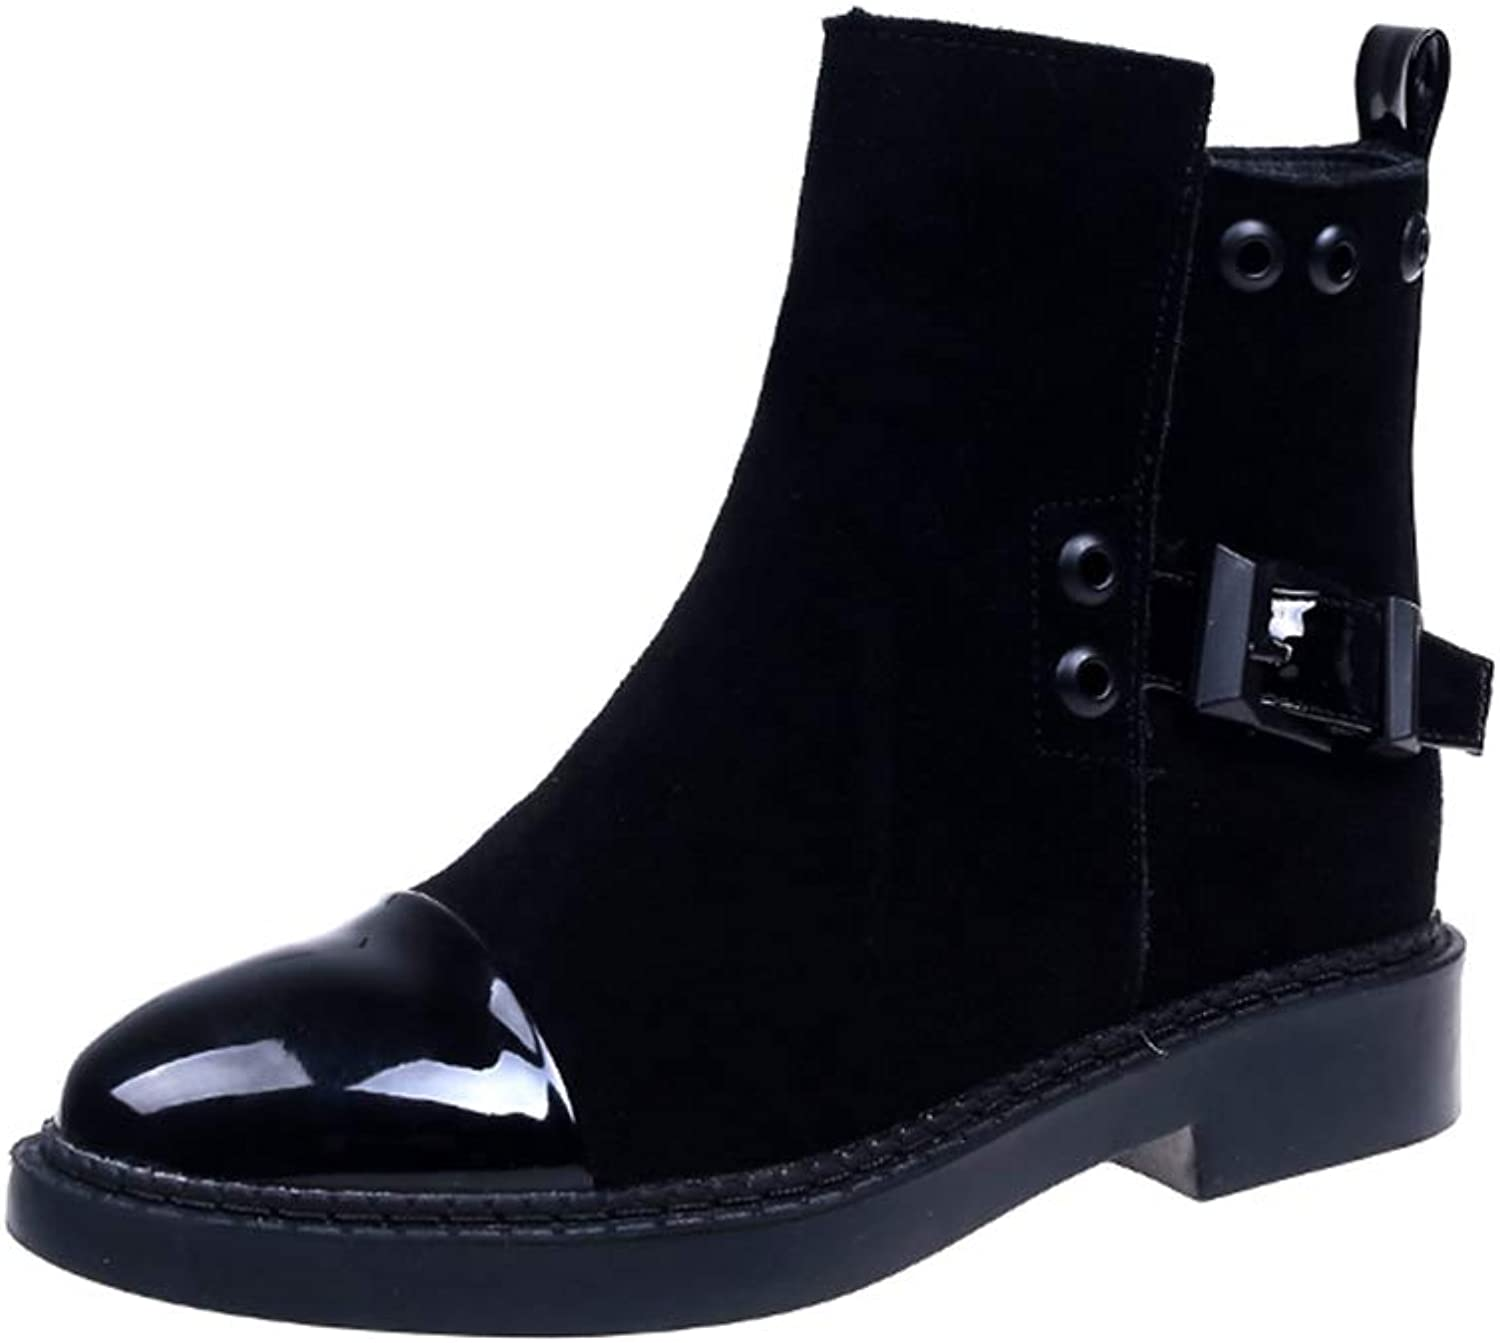 Hoxekle Ankle Boot Suede Buckle Zipper Women Short Leather Motorcycle Style Winter Casual shoes